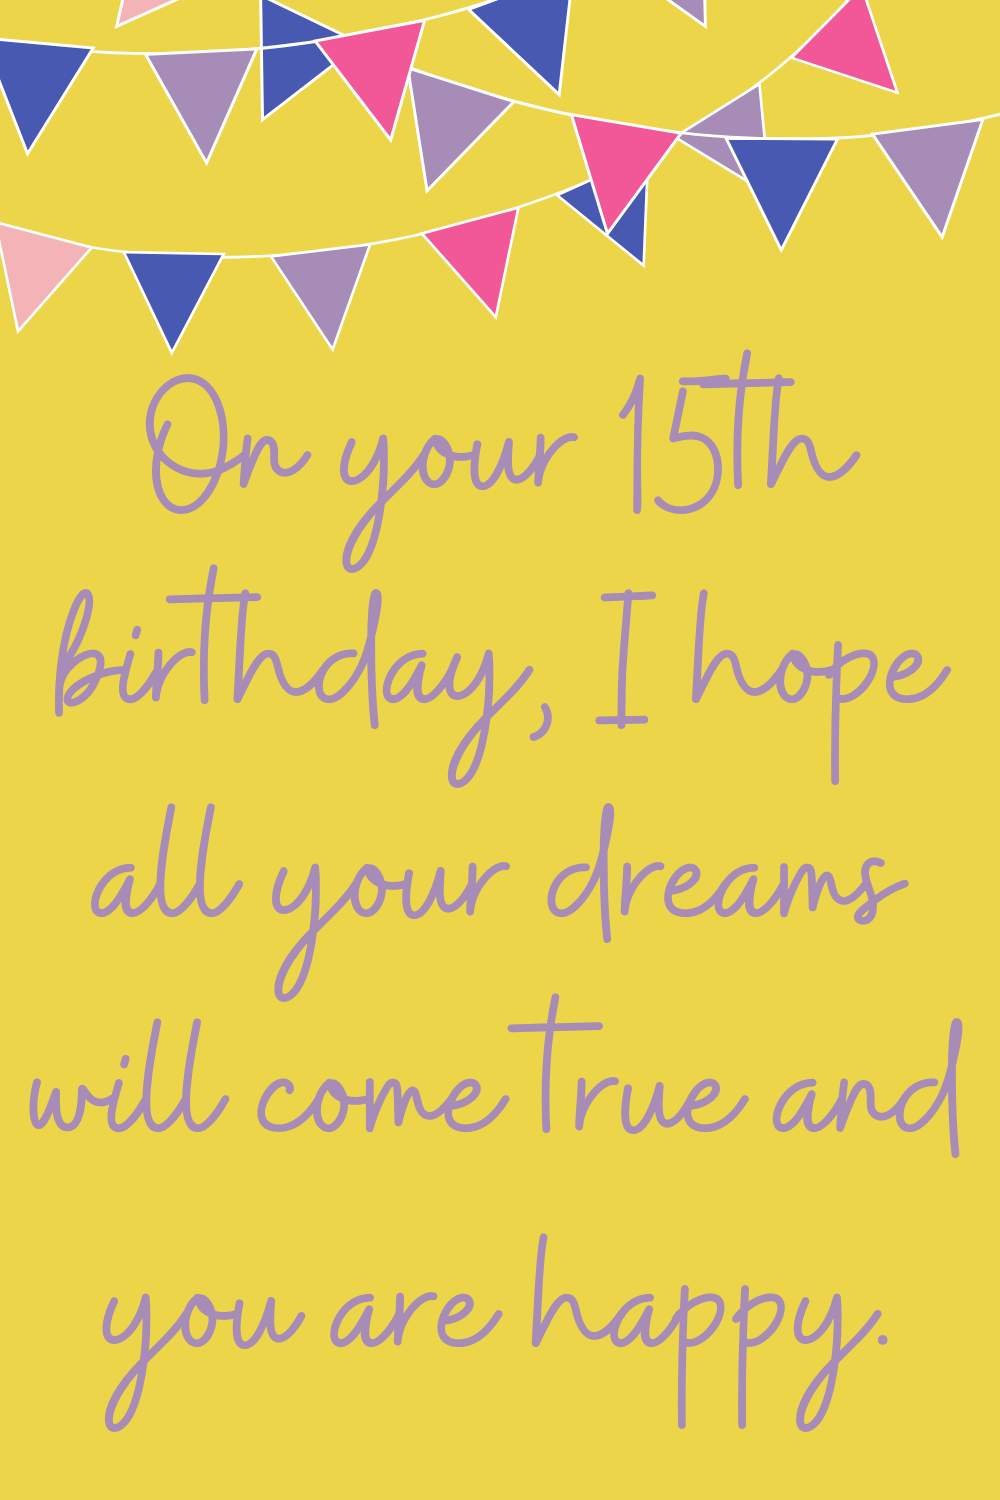 Birthday Images 15th quotes